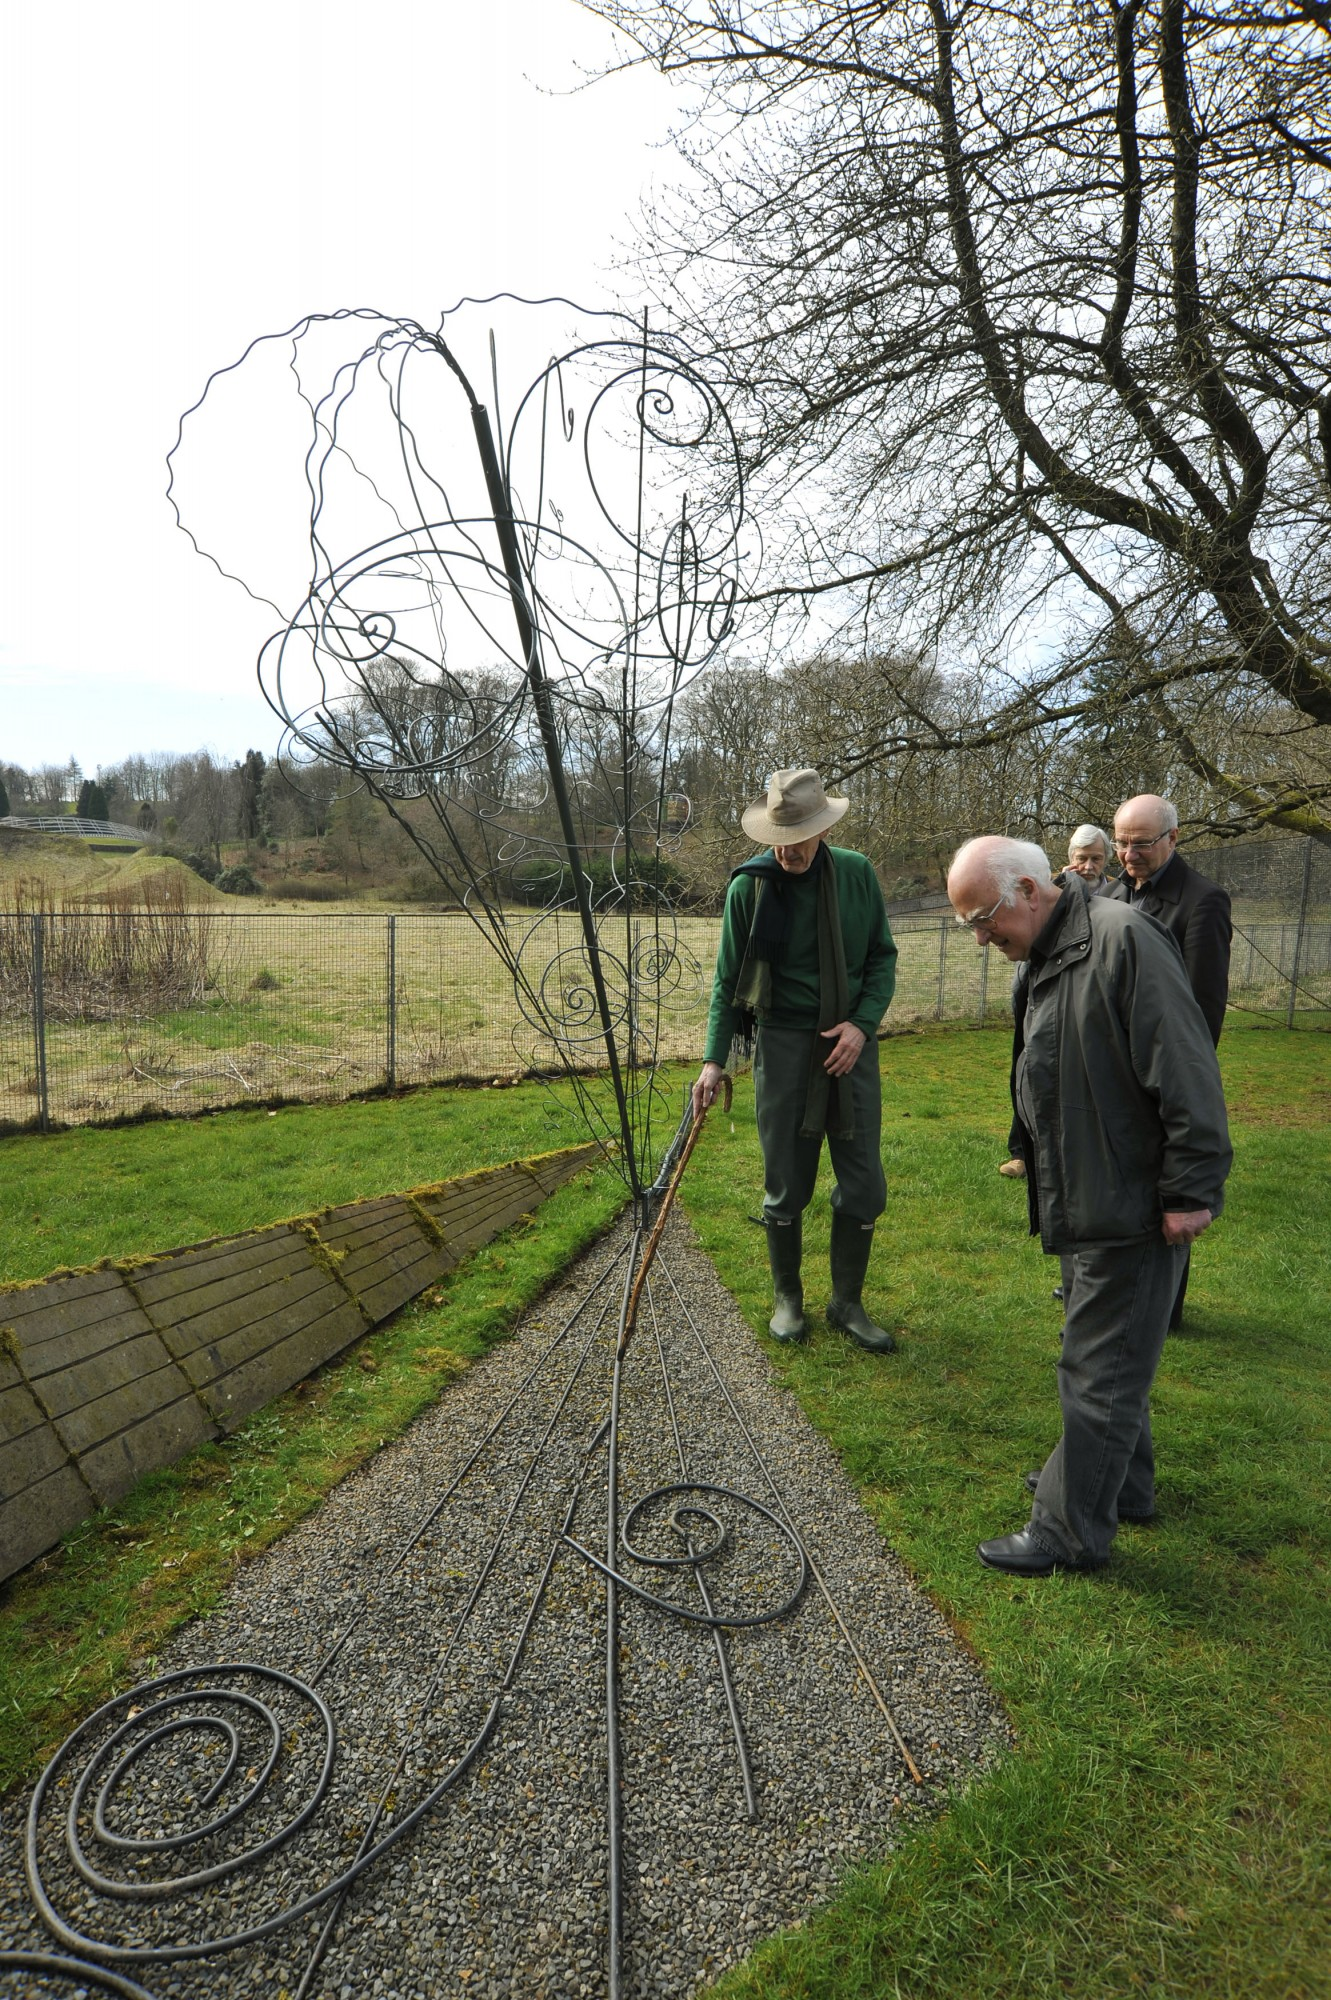 Peter Higgs and Charles Jencks admiring the bubble chamber tracks sculpture. In the background are Alan Walker and Rolf Heuer